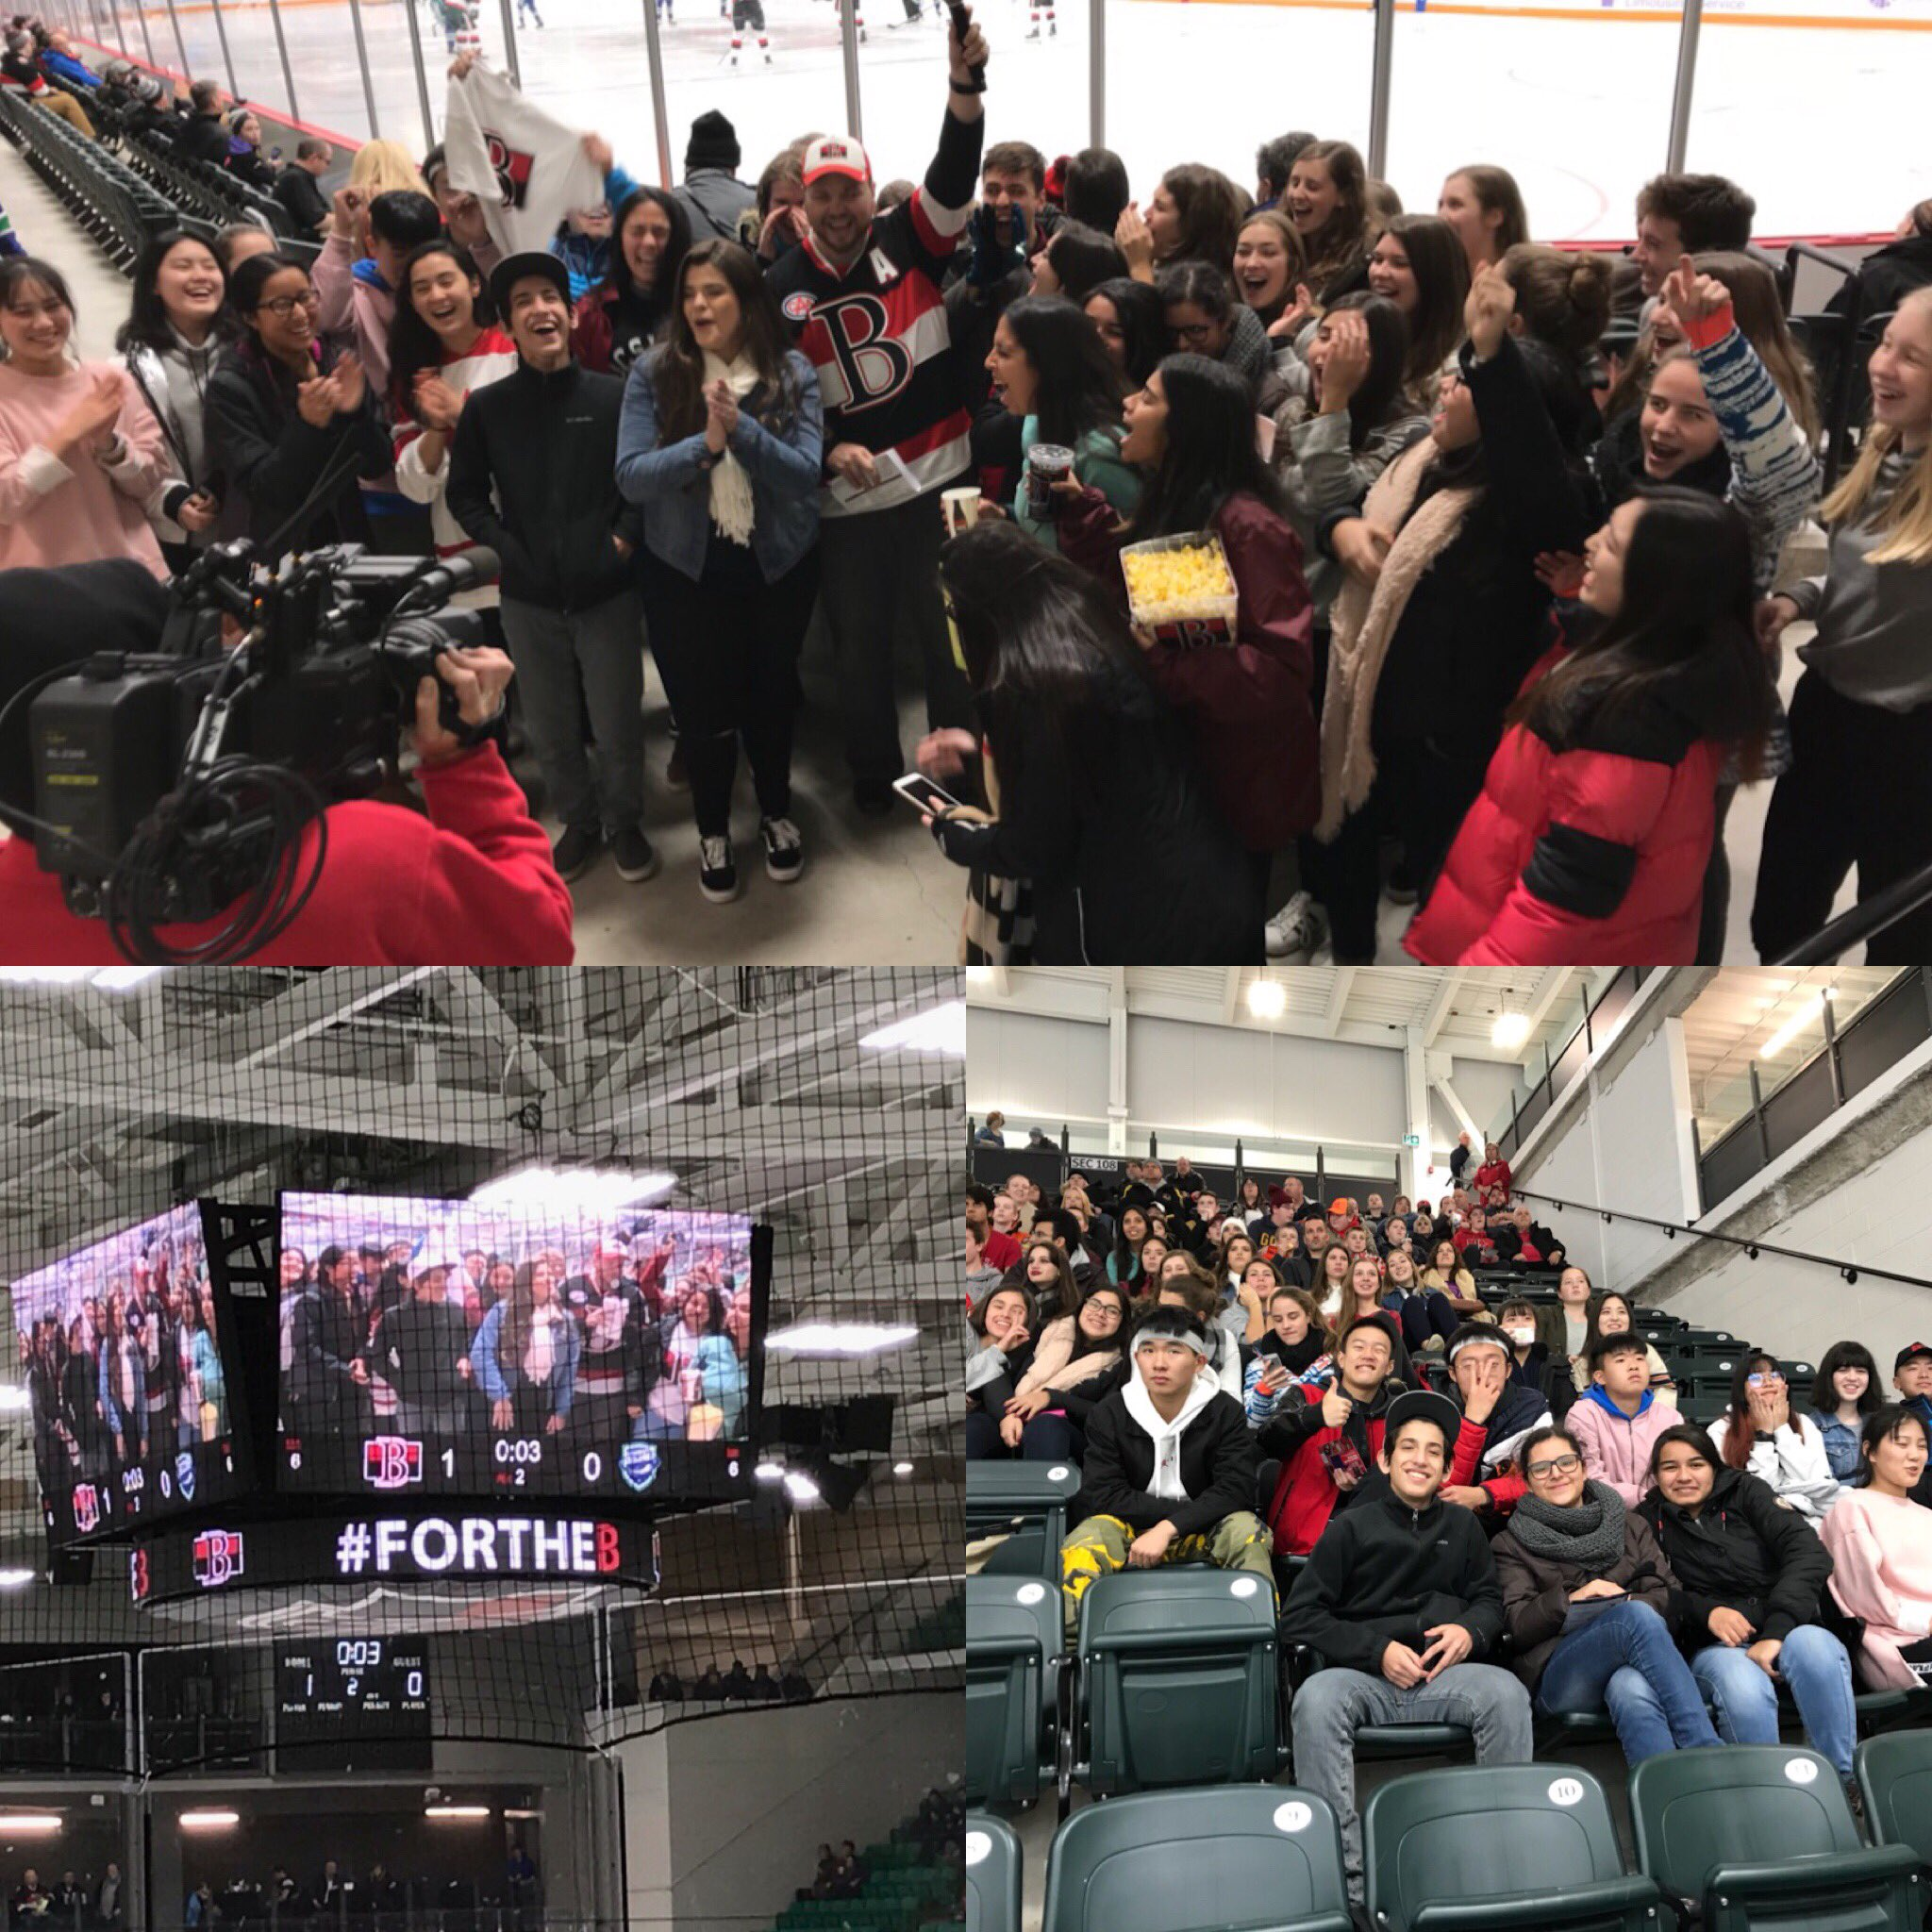 ISP Belleville Senators ISP Trip Collage